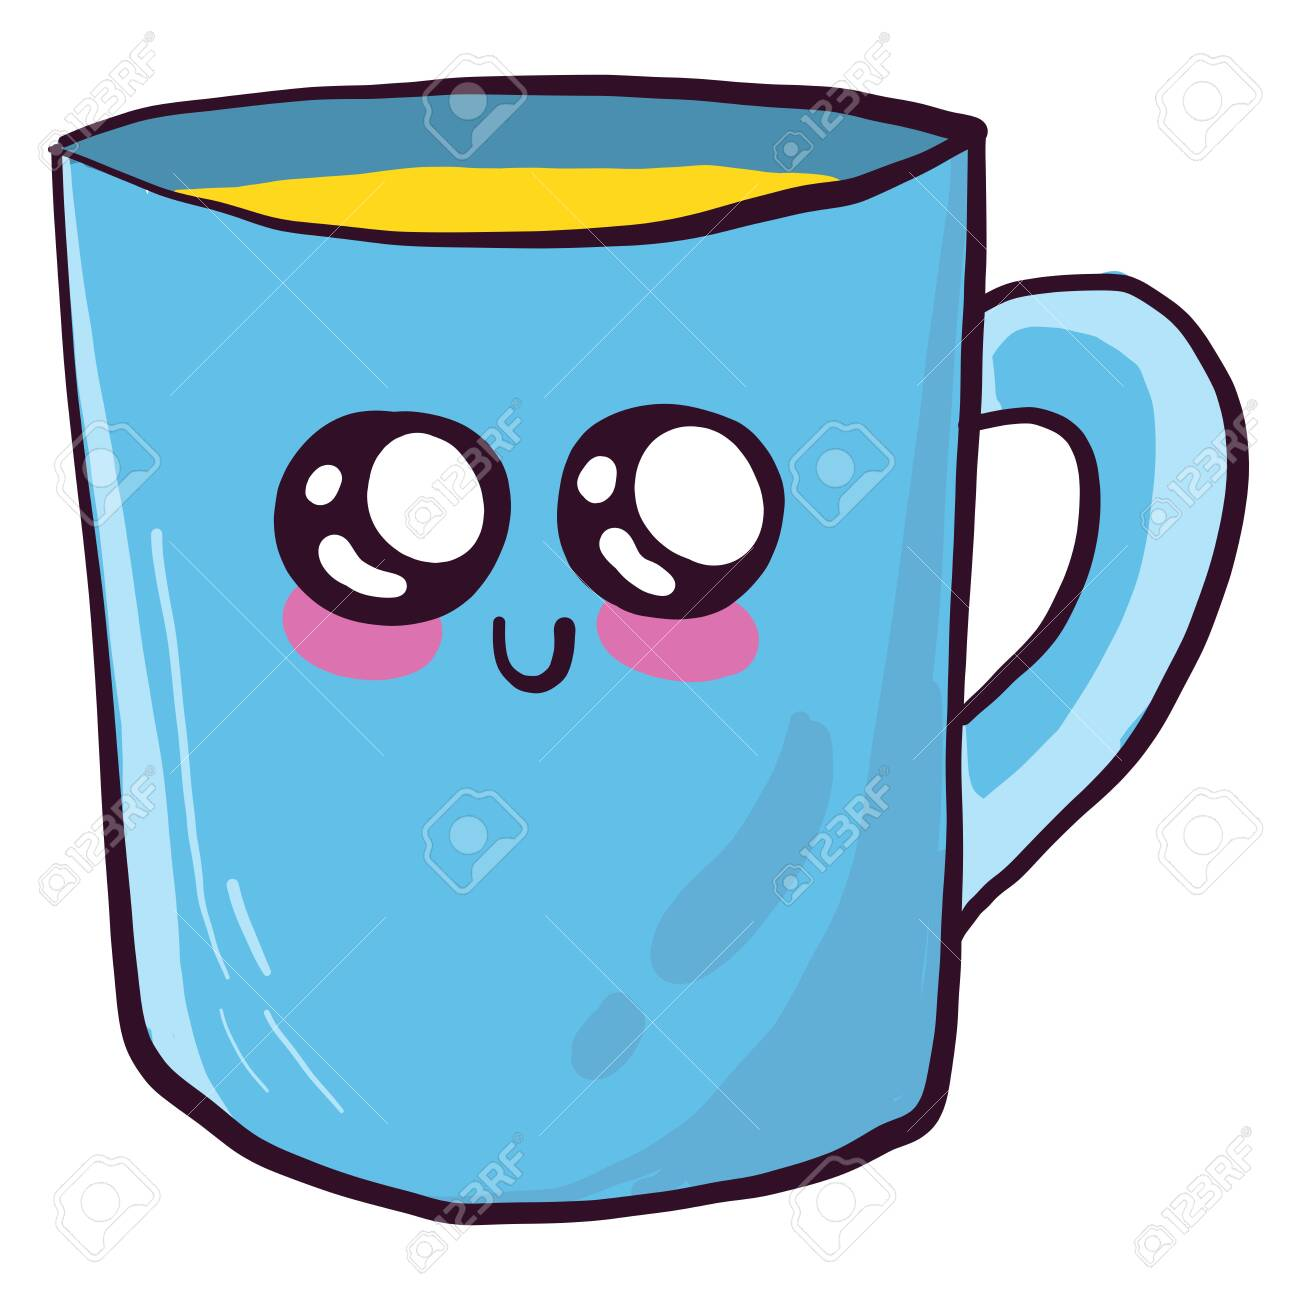 Cute cup , illustration, vector on white background - 152984707